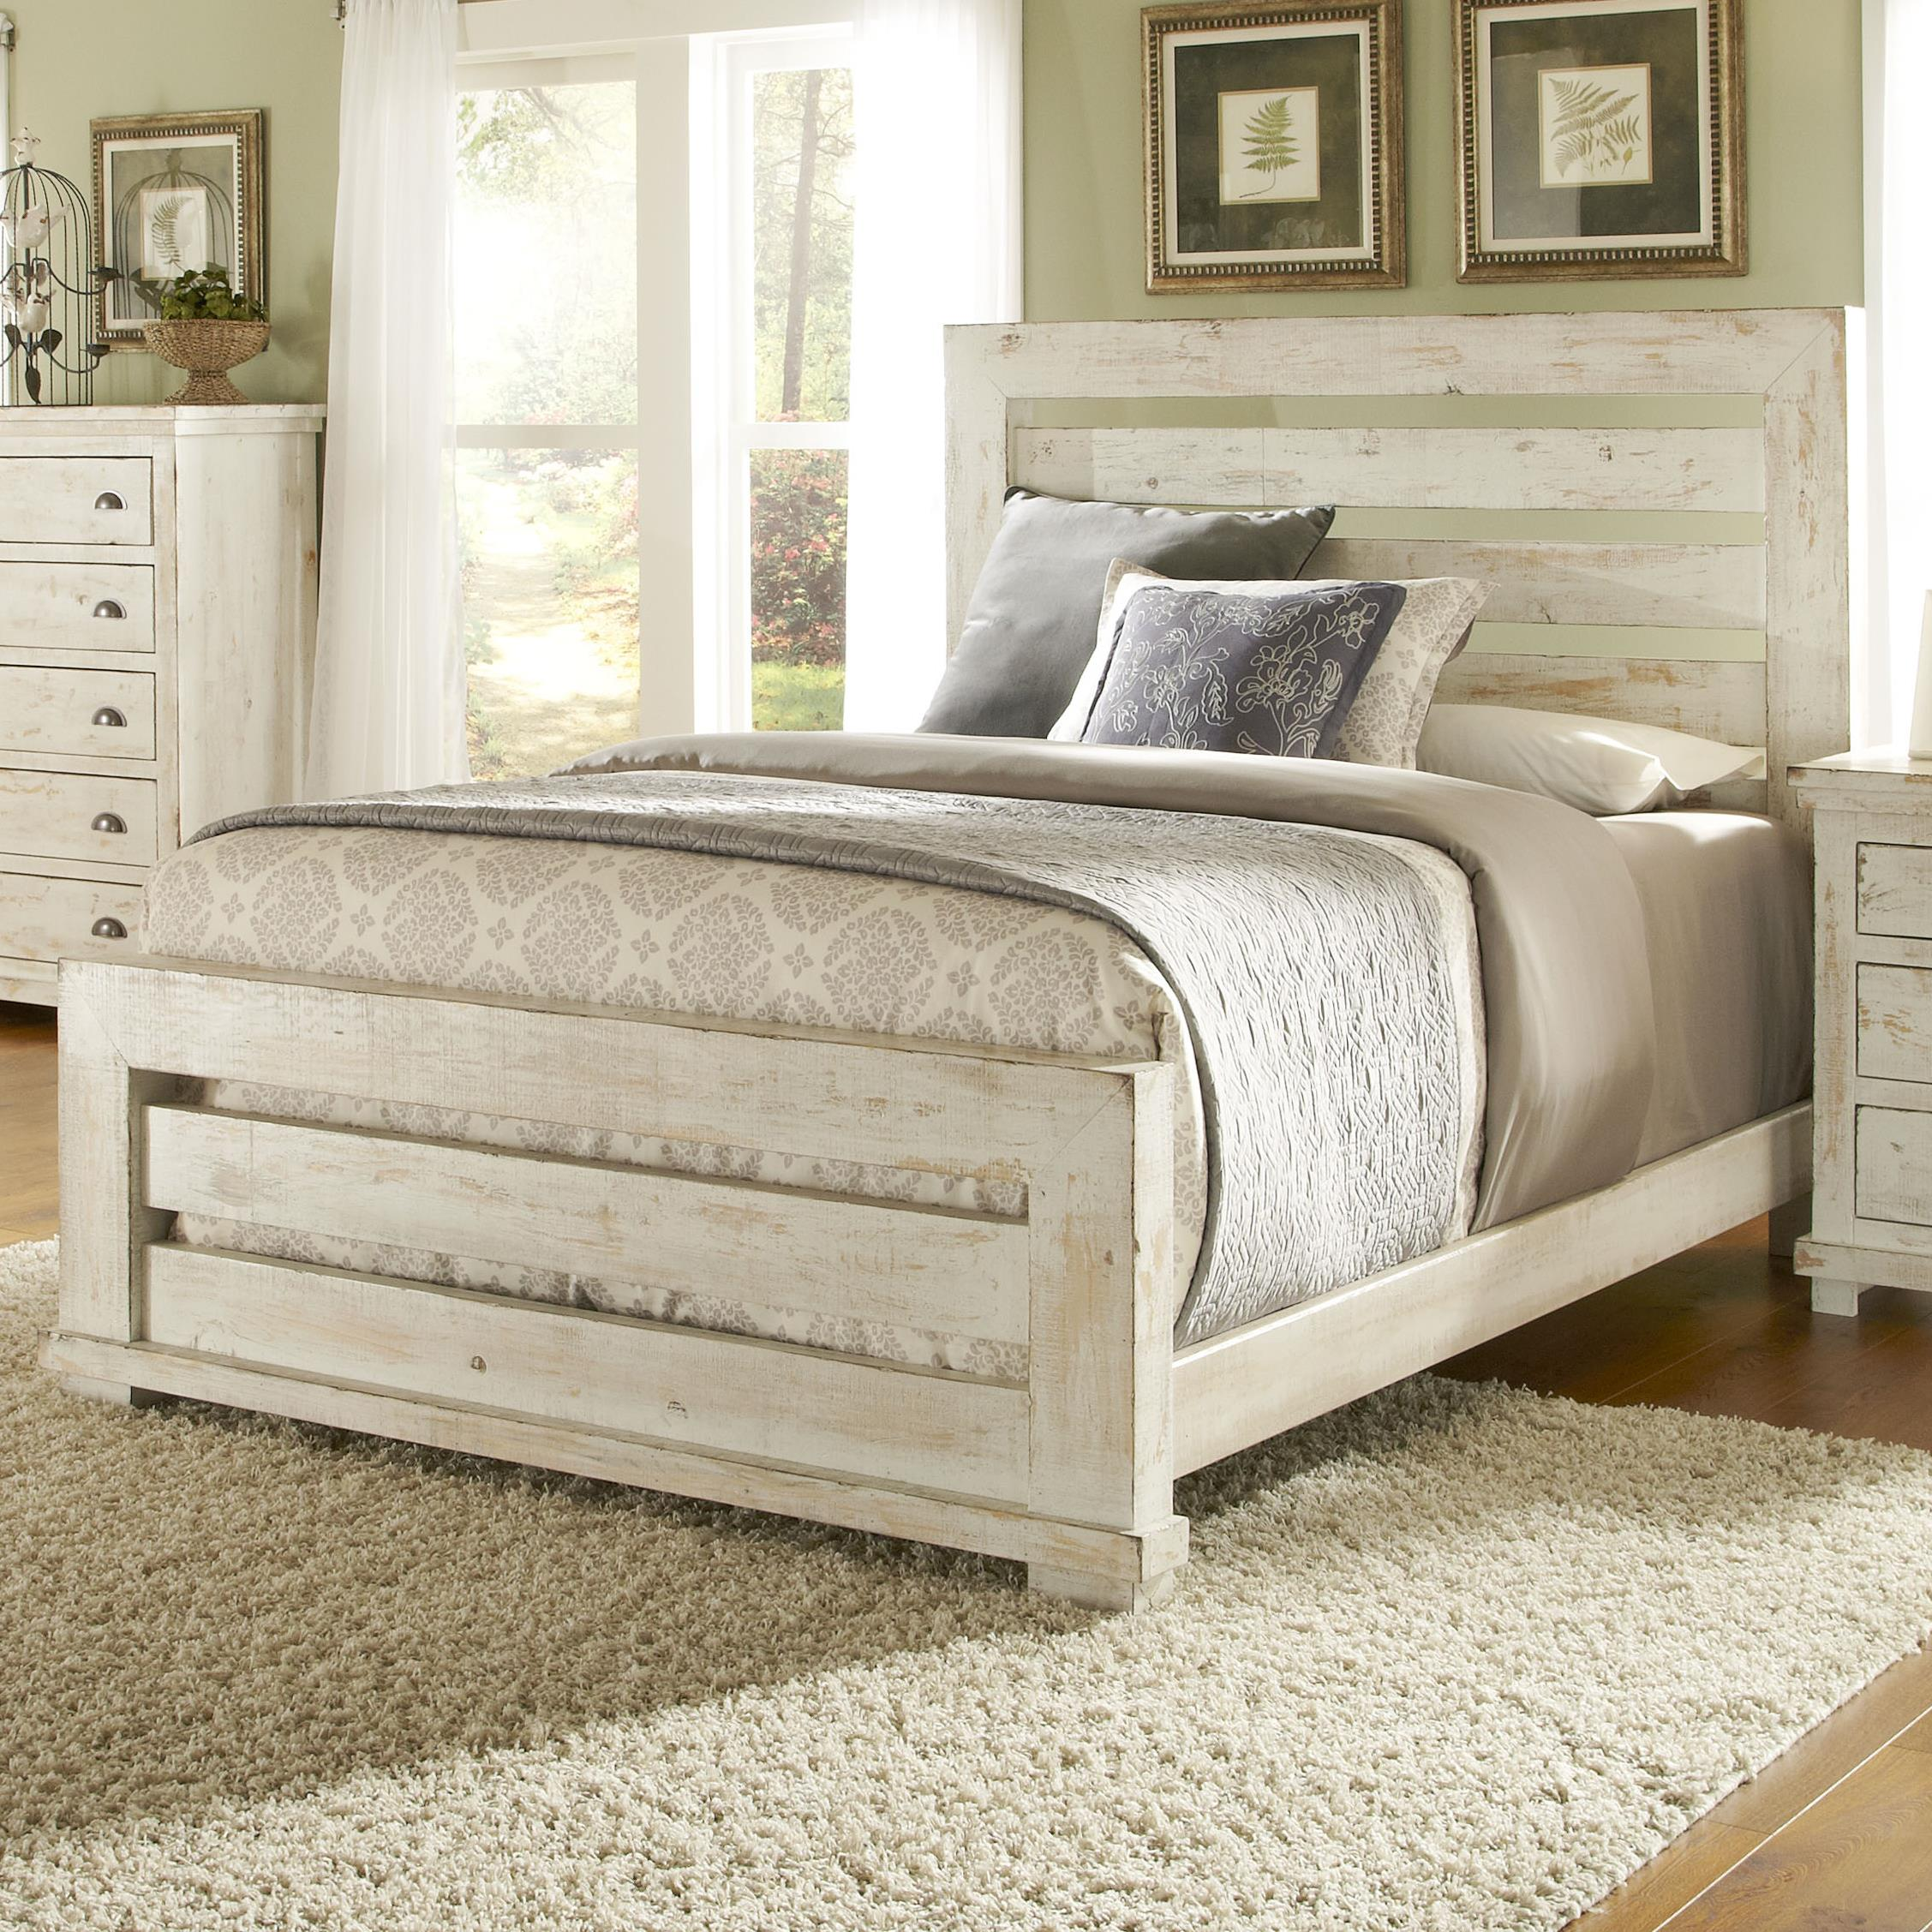 Willow California King Slat Bed by Progressive Furniture at Simply Home by Lindy's